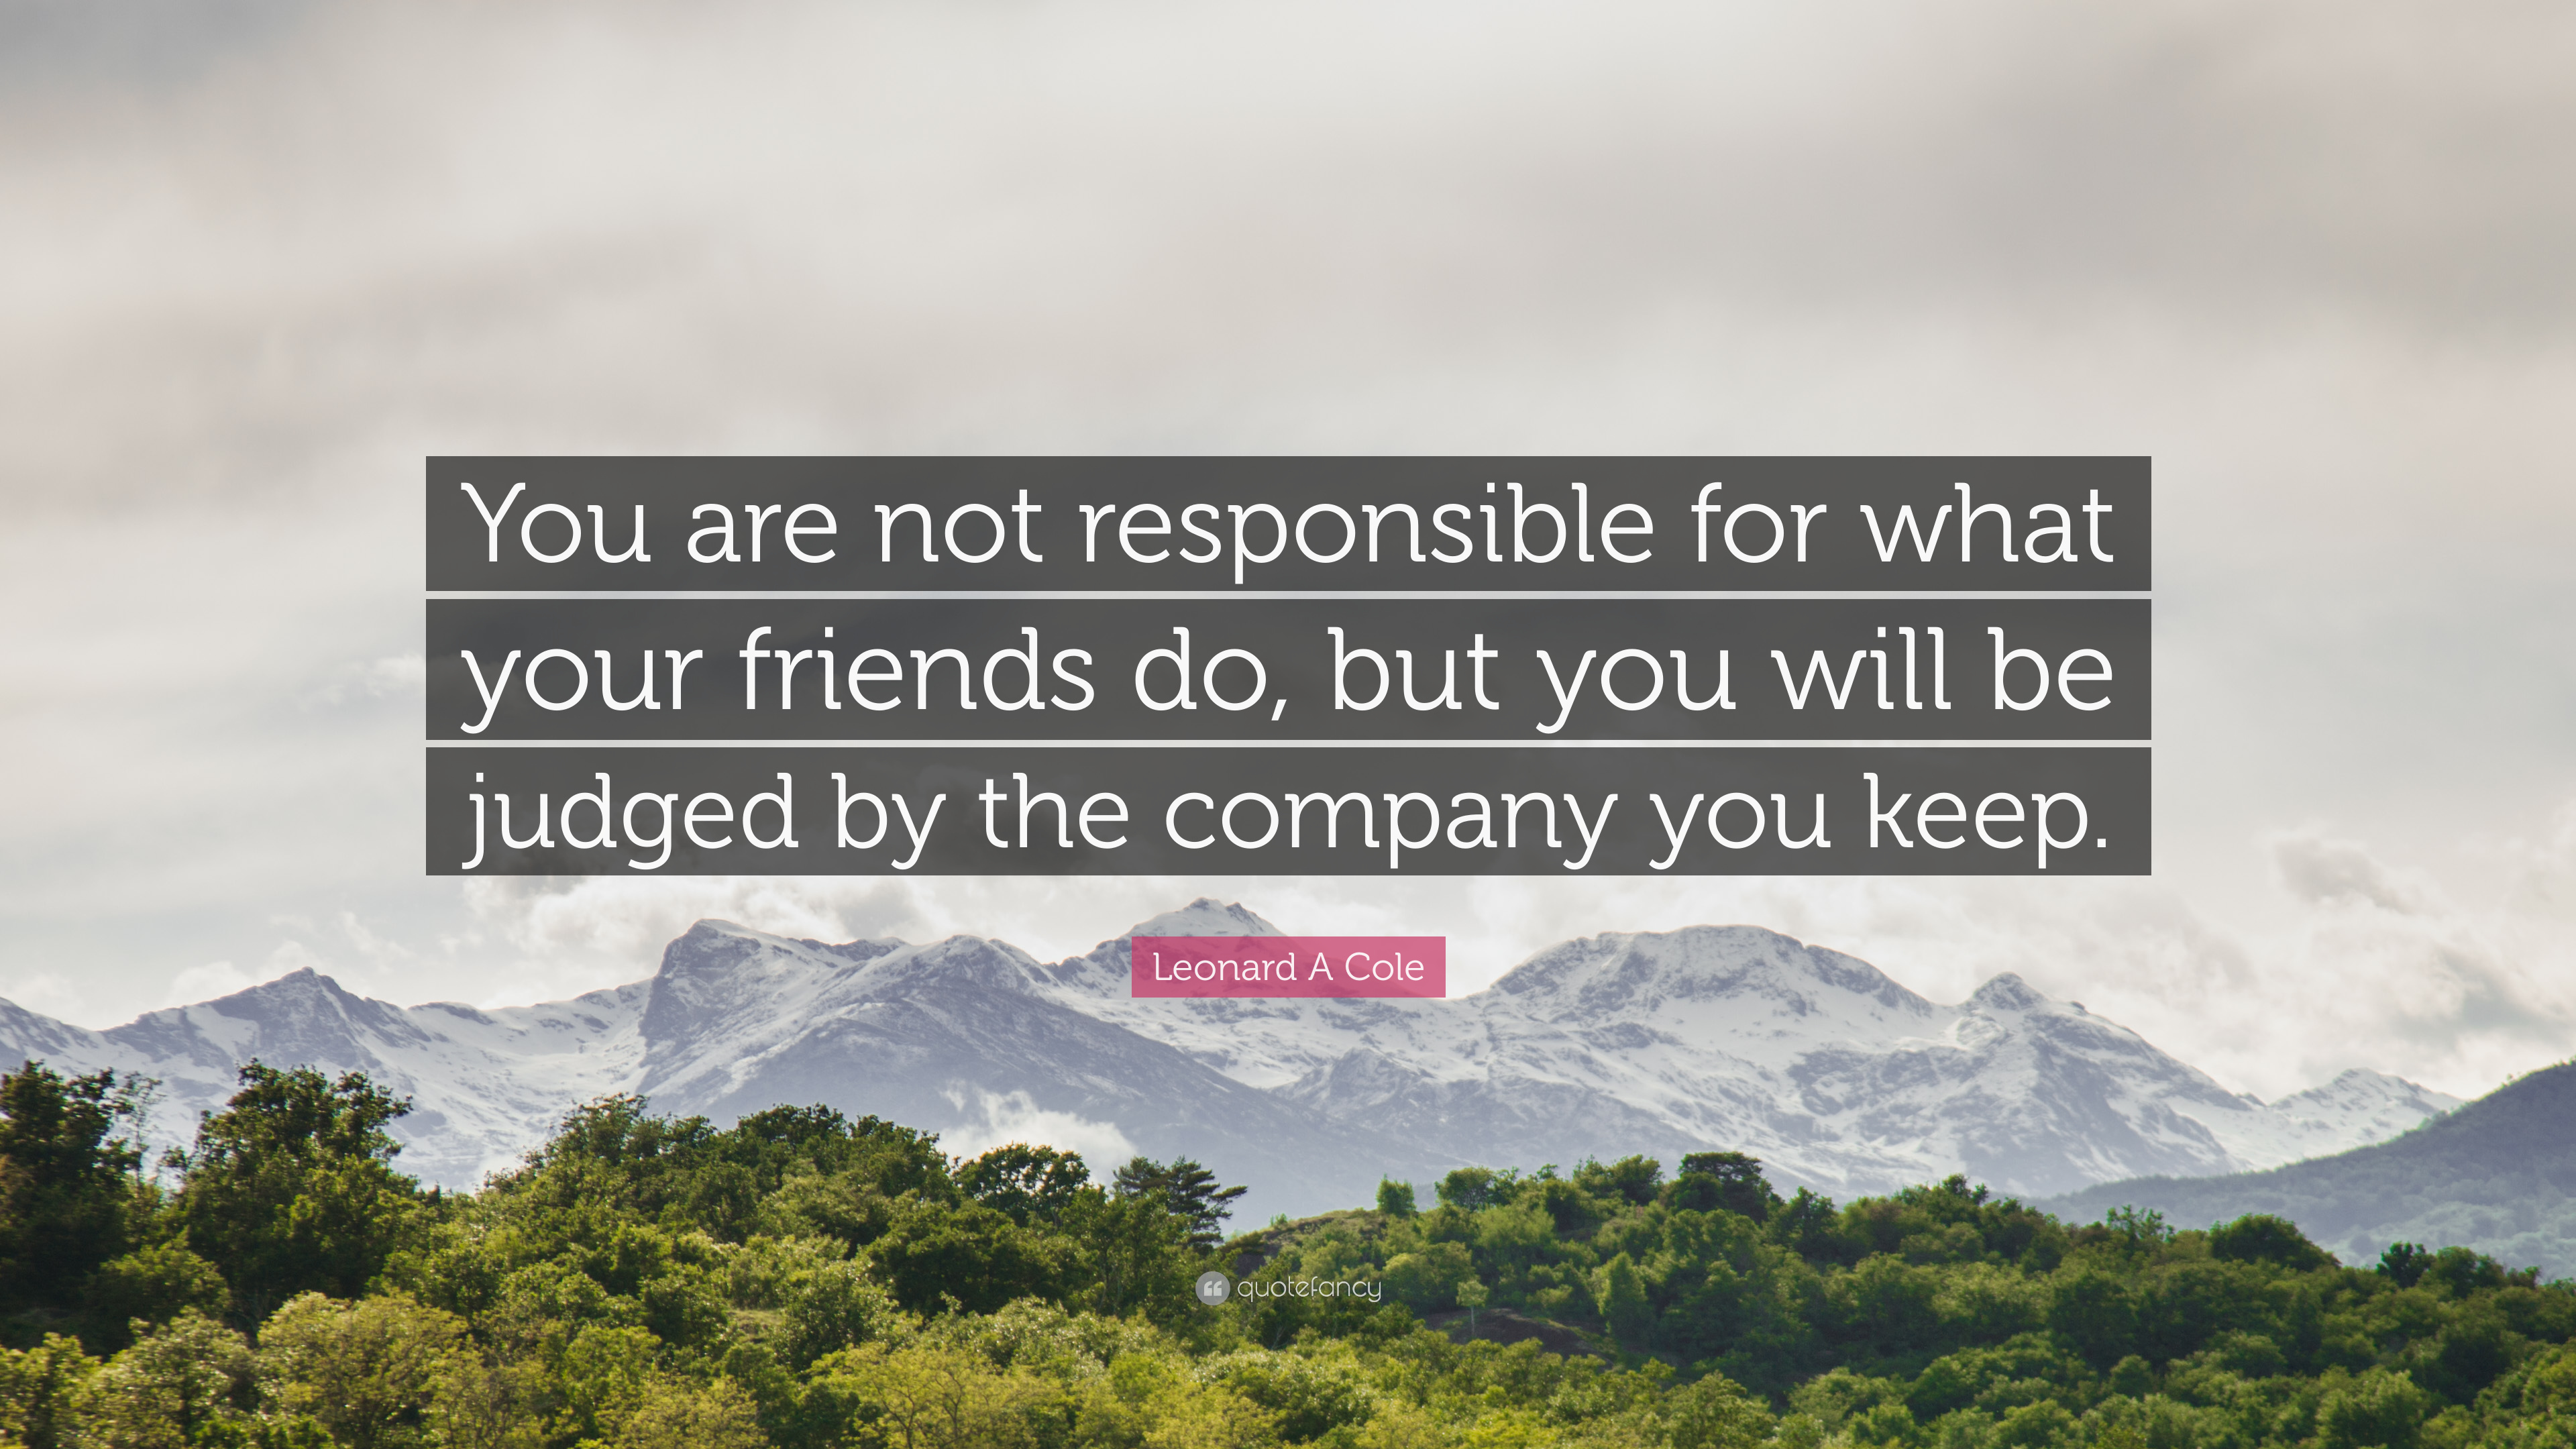 Leonard A Cole Quote You Are Not Responsible For What Your Friends